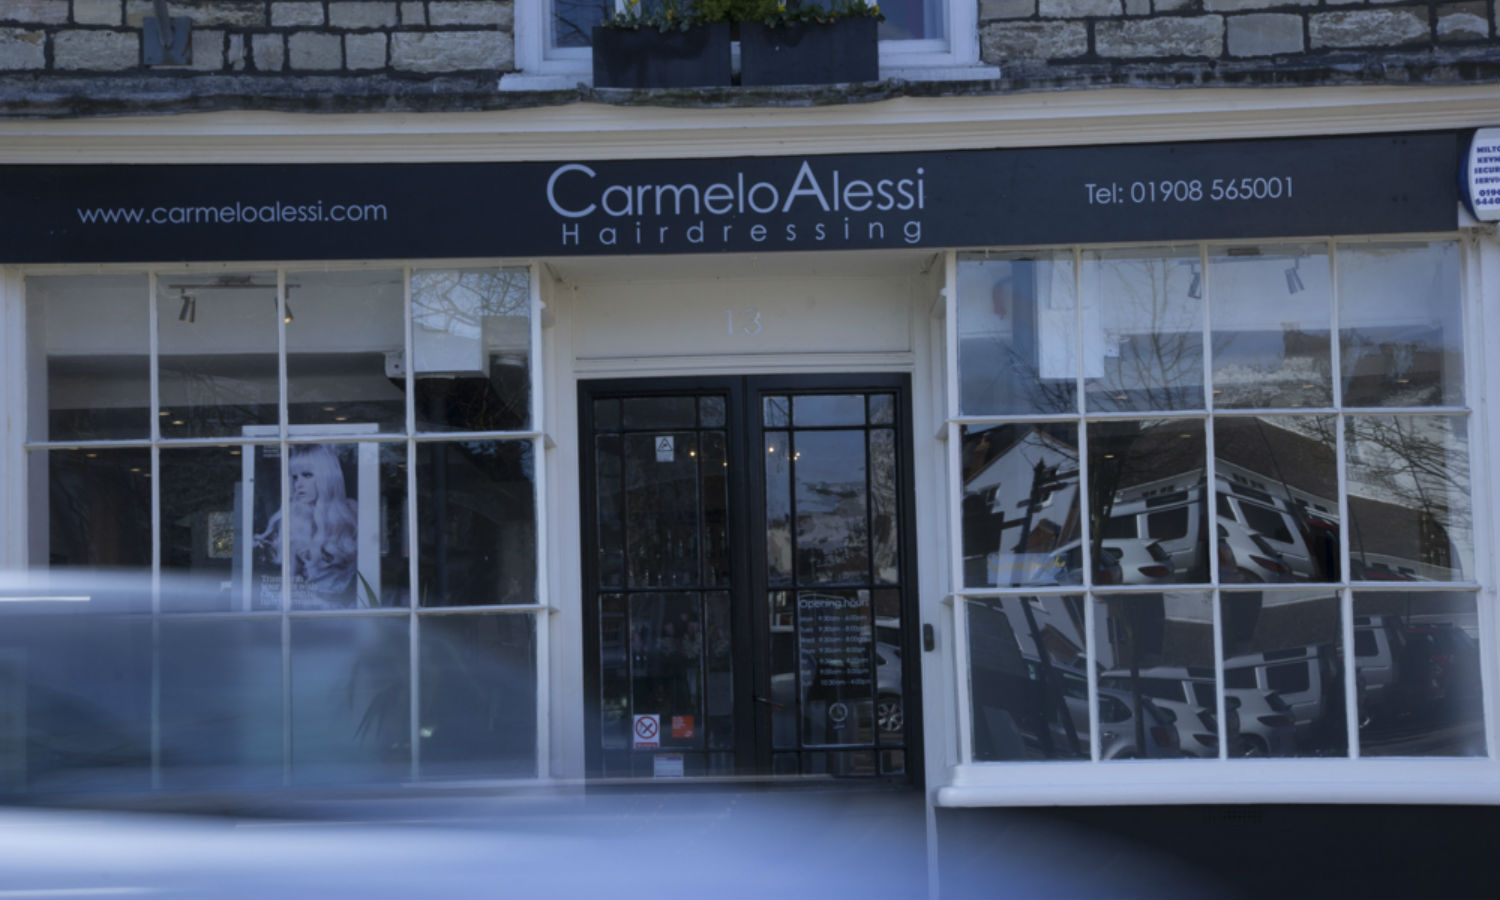 carmelo alessi hairdressing front door of shop stony stratford